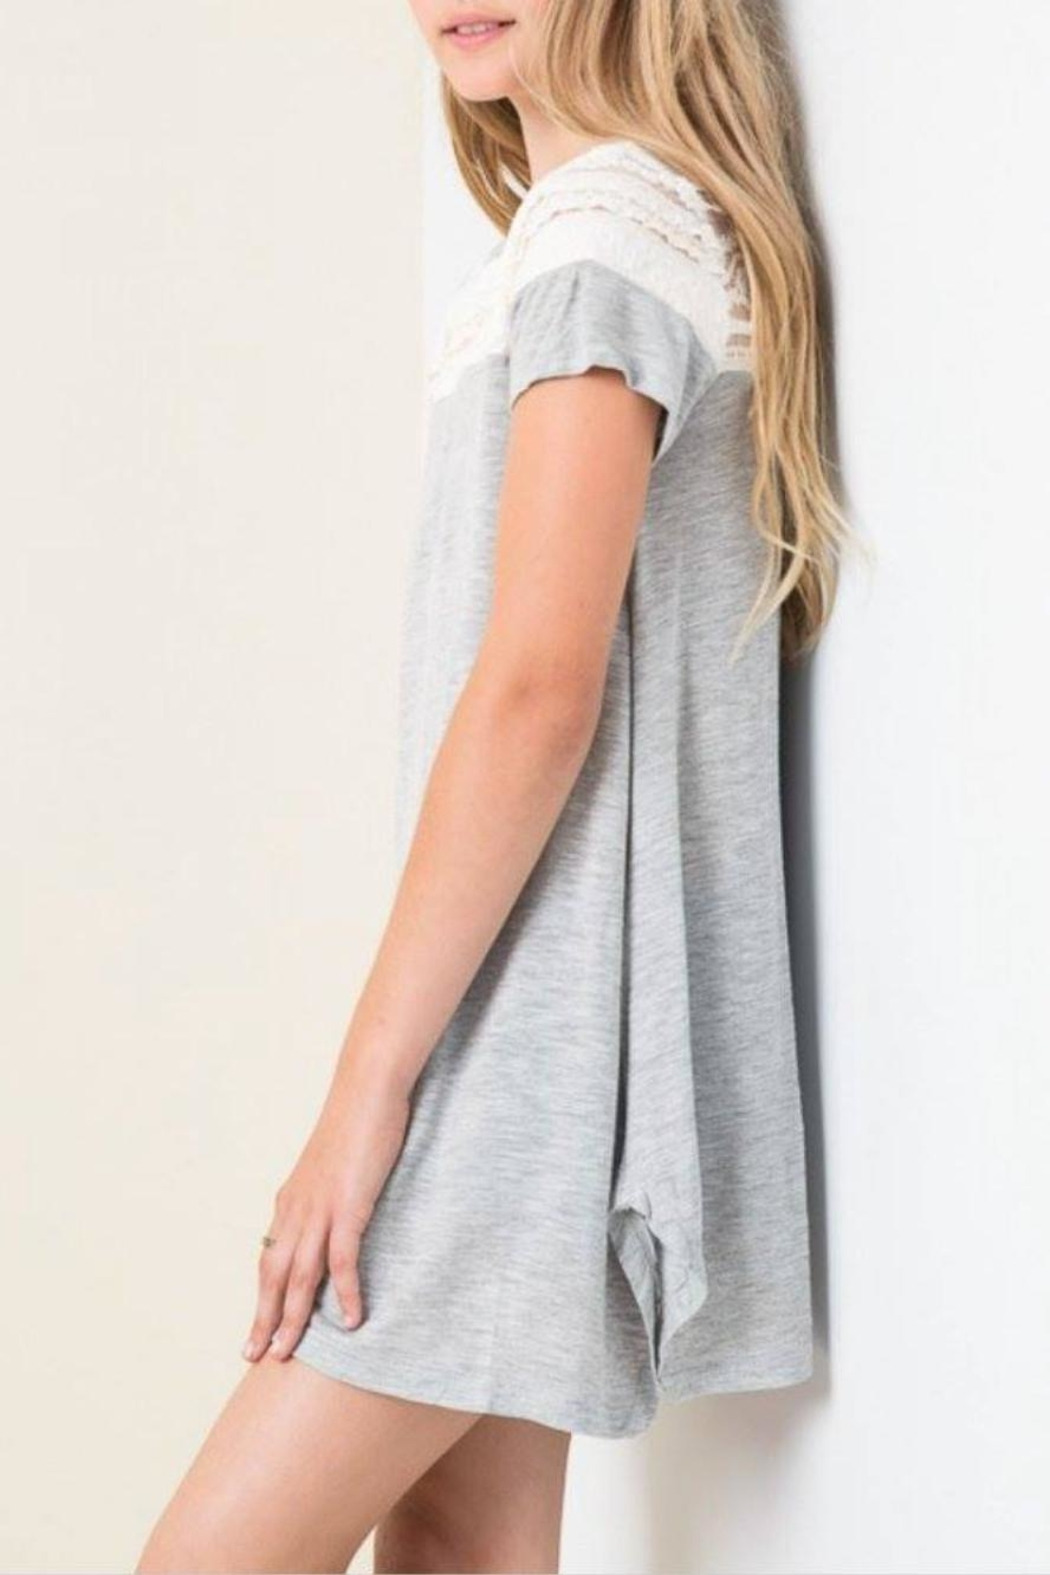 hayden los angeles casual lace tunic from kansas by seirer